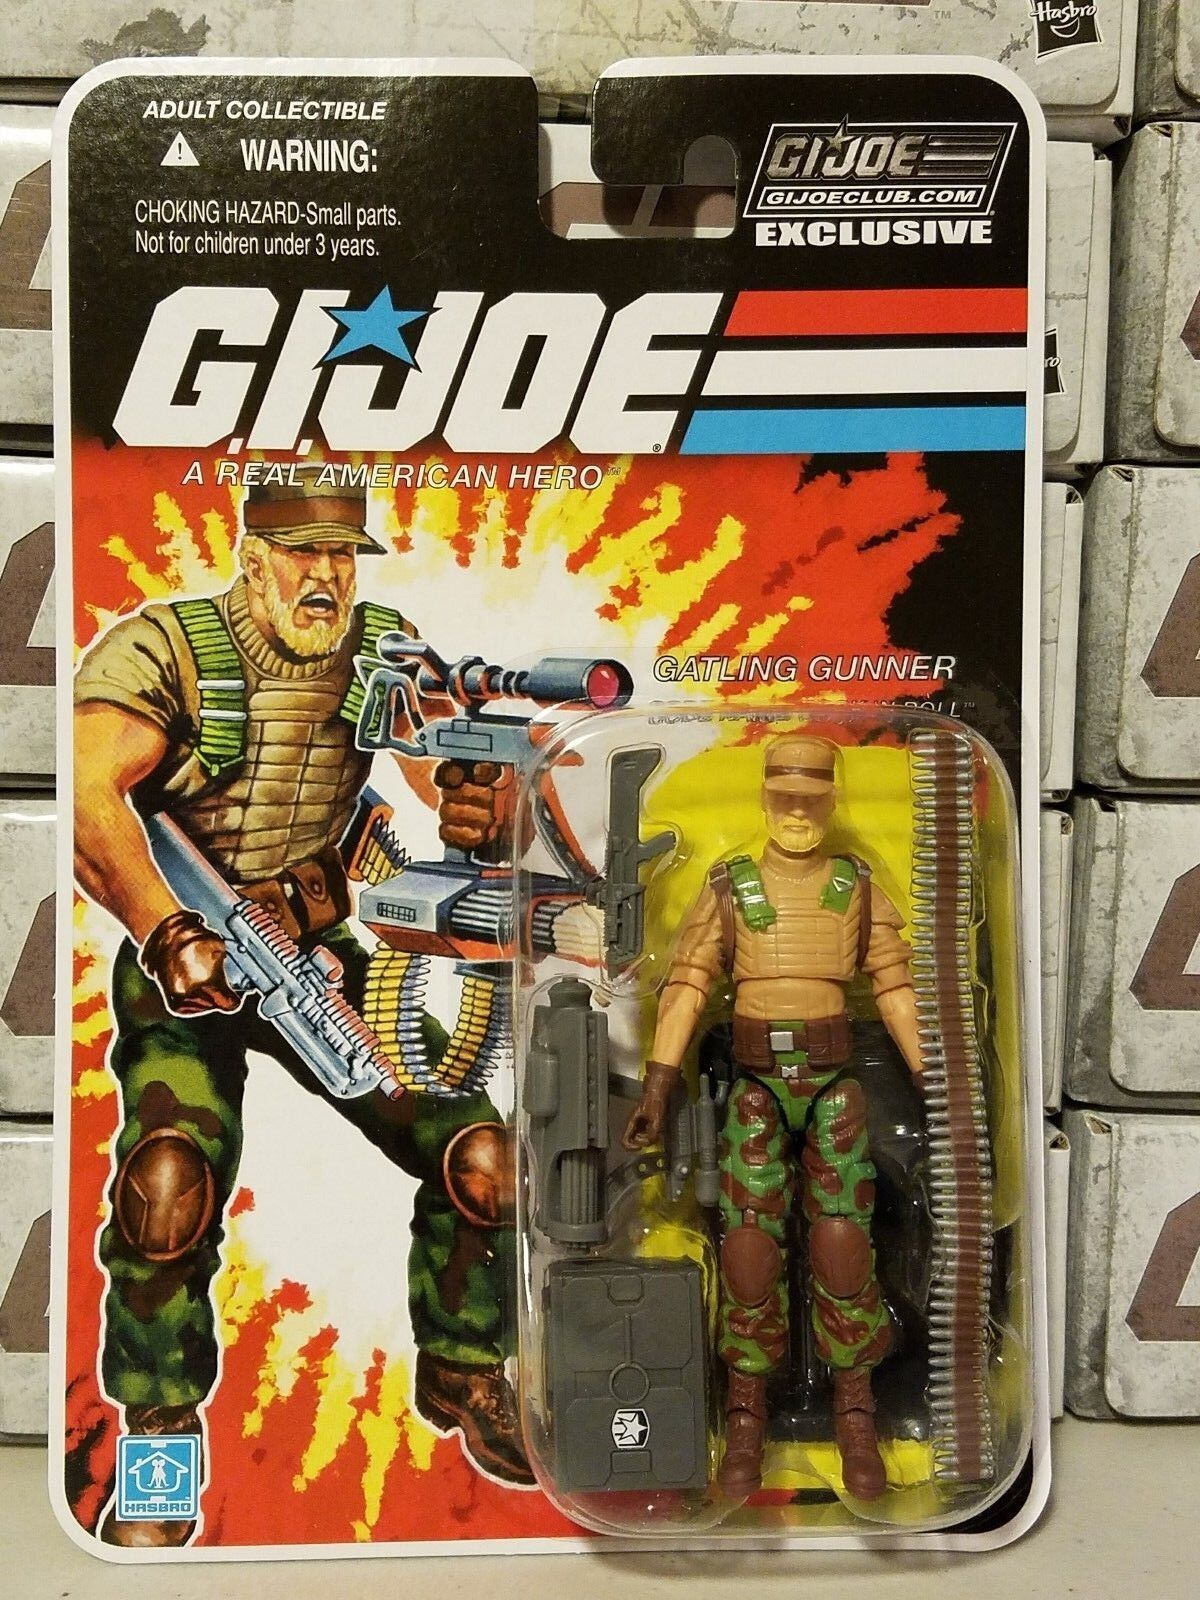 GI Joe Collector's Club 2018 Rock N Roll autoDED IN He  nuovoSEALED